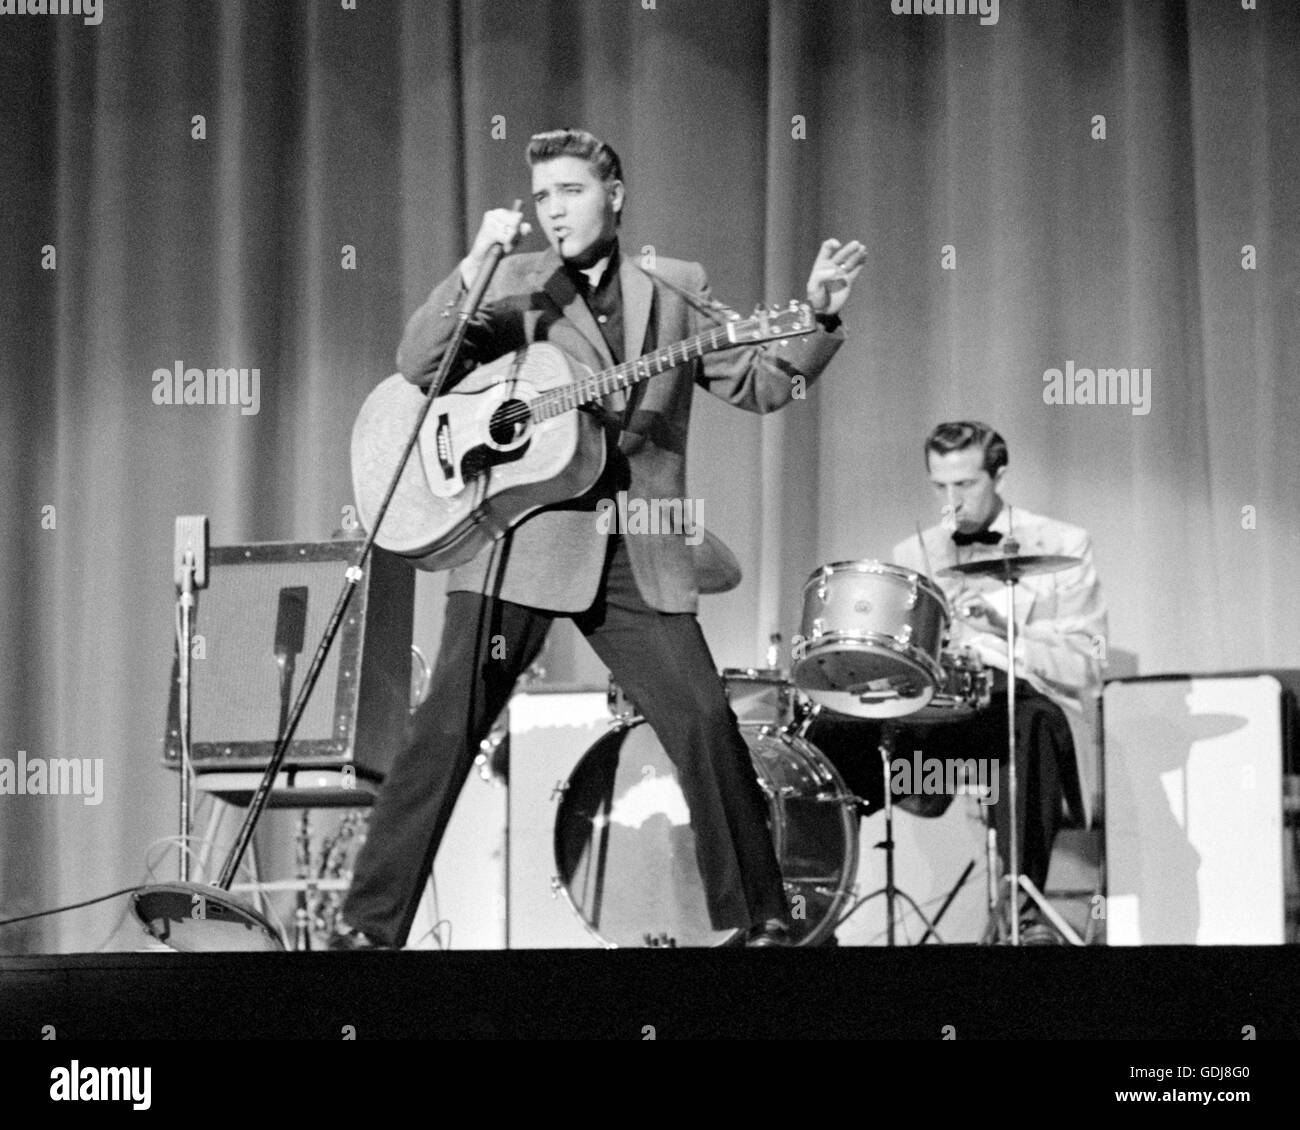 Elvis Presley, performing on stage, May 26, 1956. - Stock Image